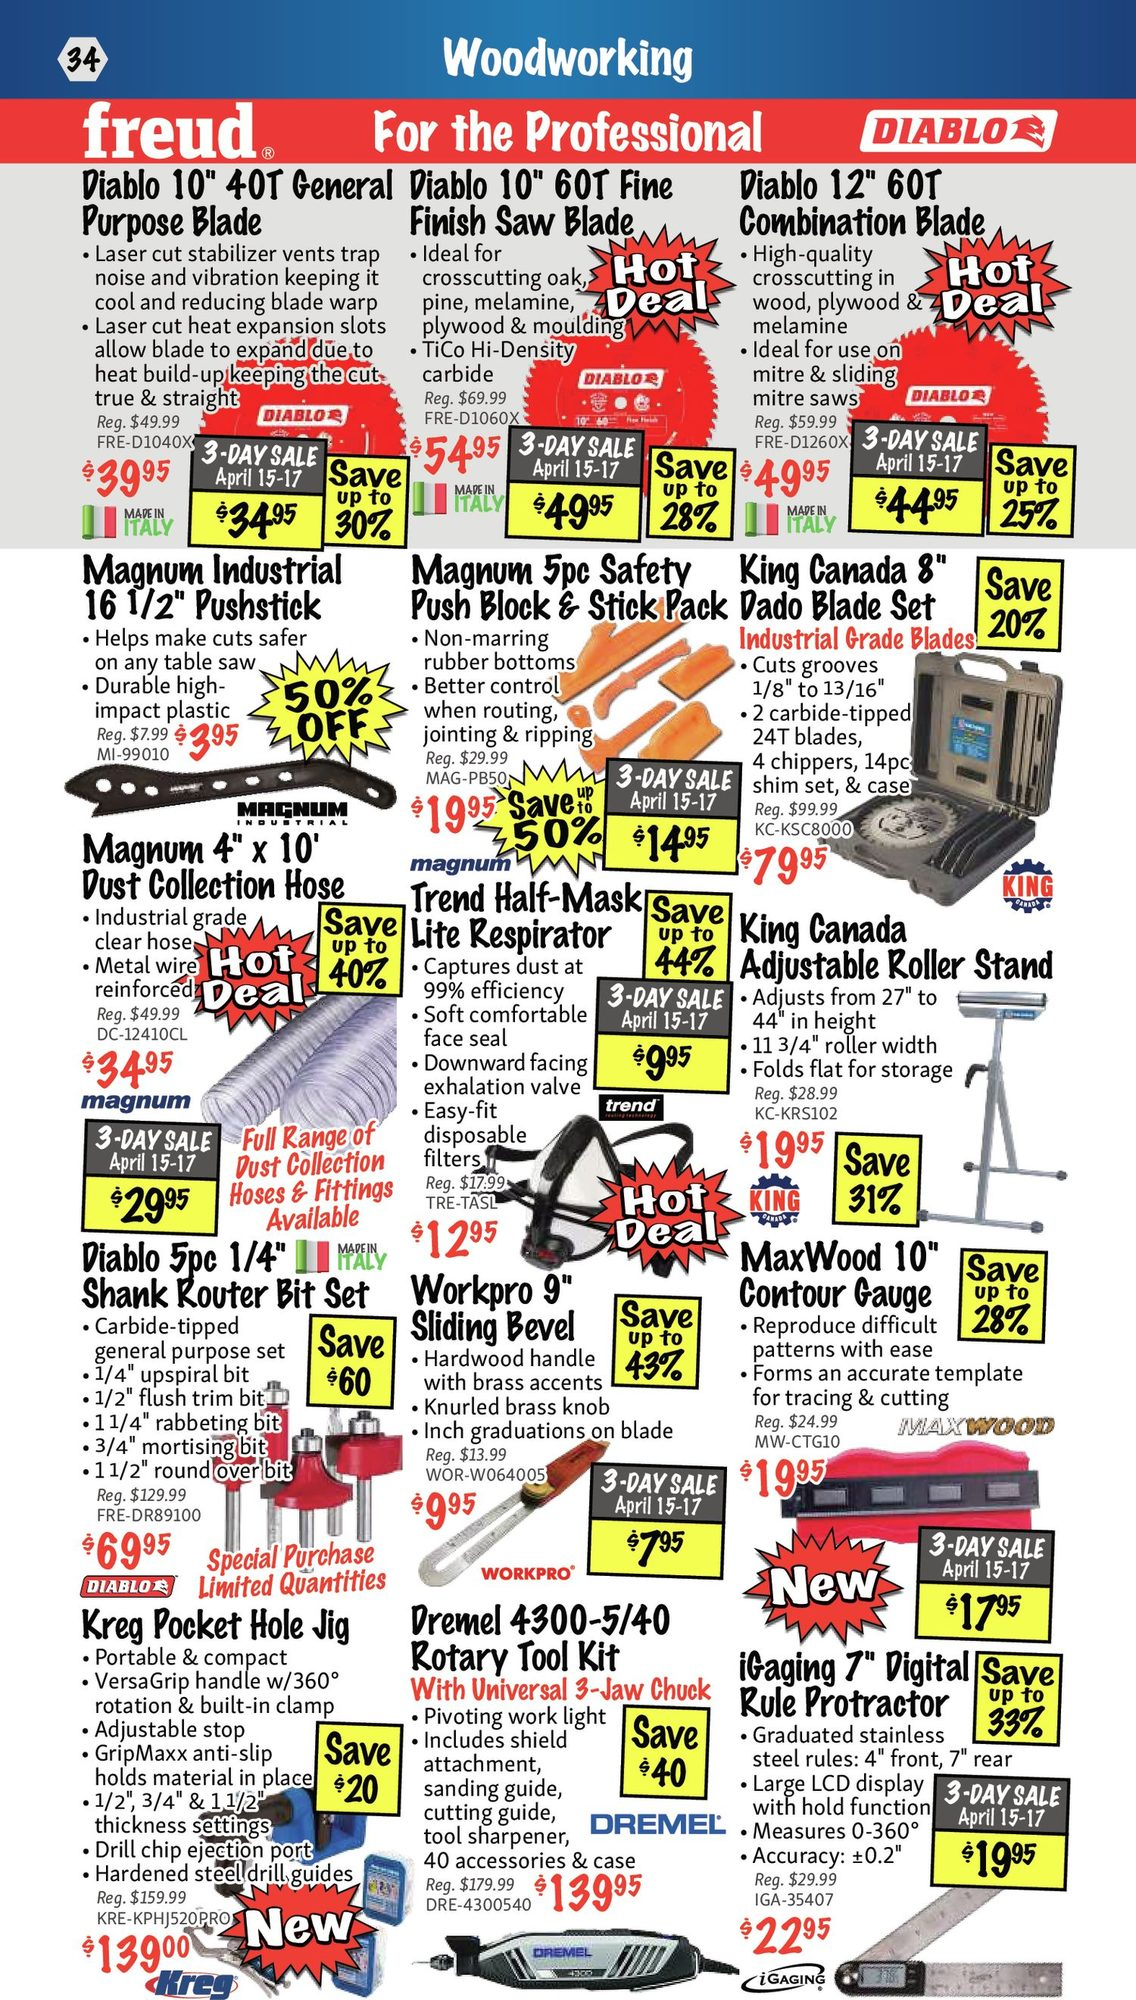 KMS Tools - Hand Tools, Air Tools & Compressor Sale - Page 34